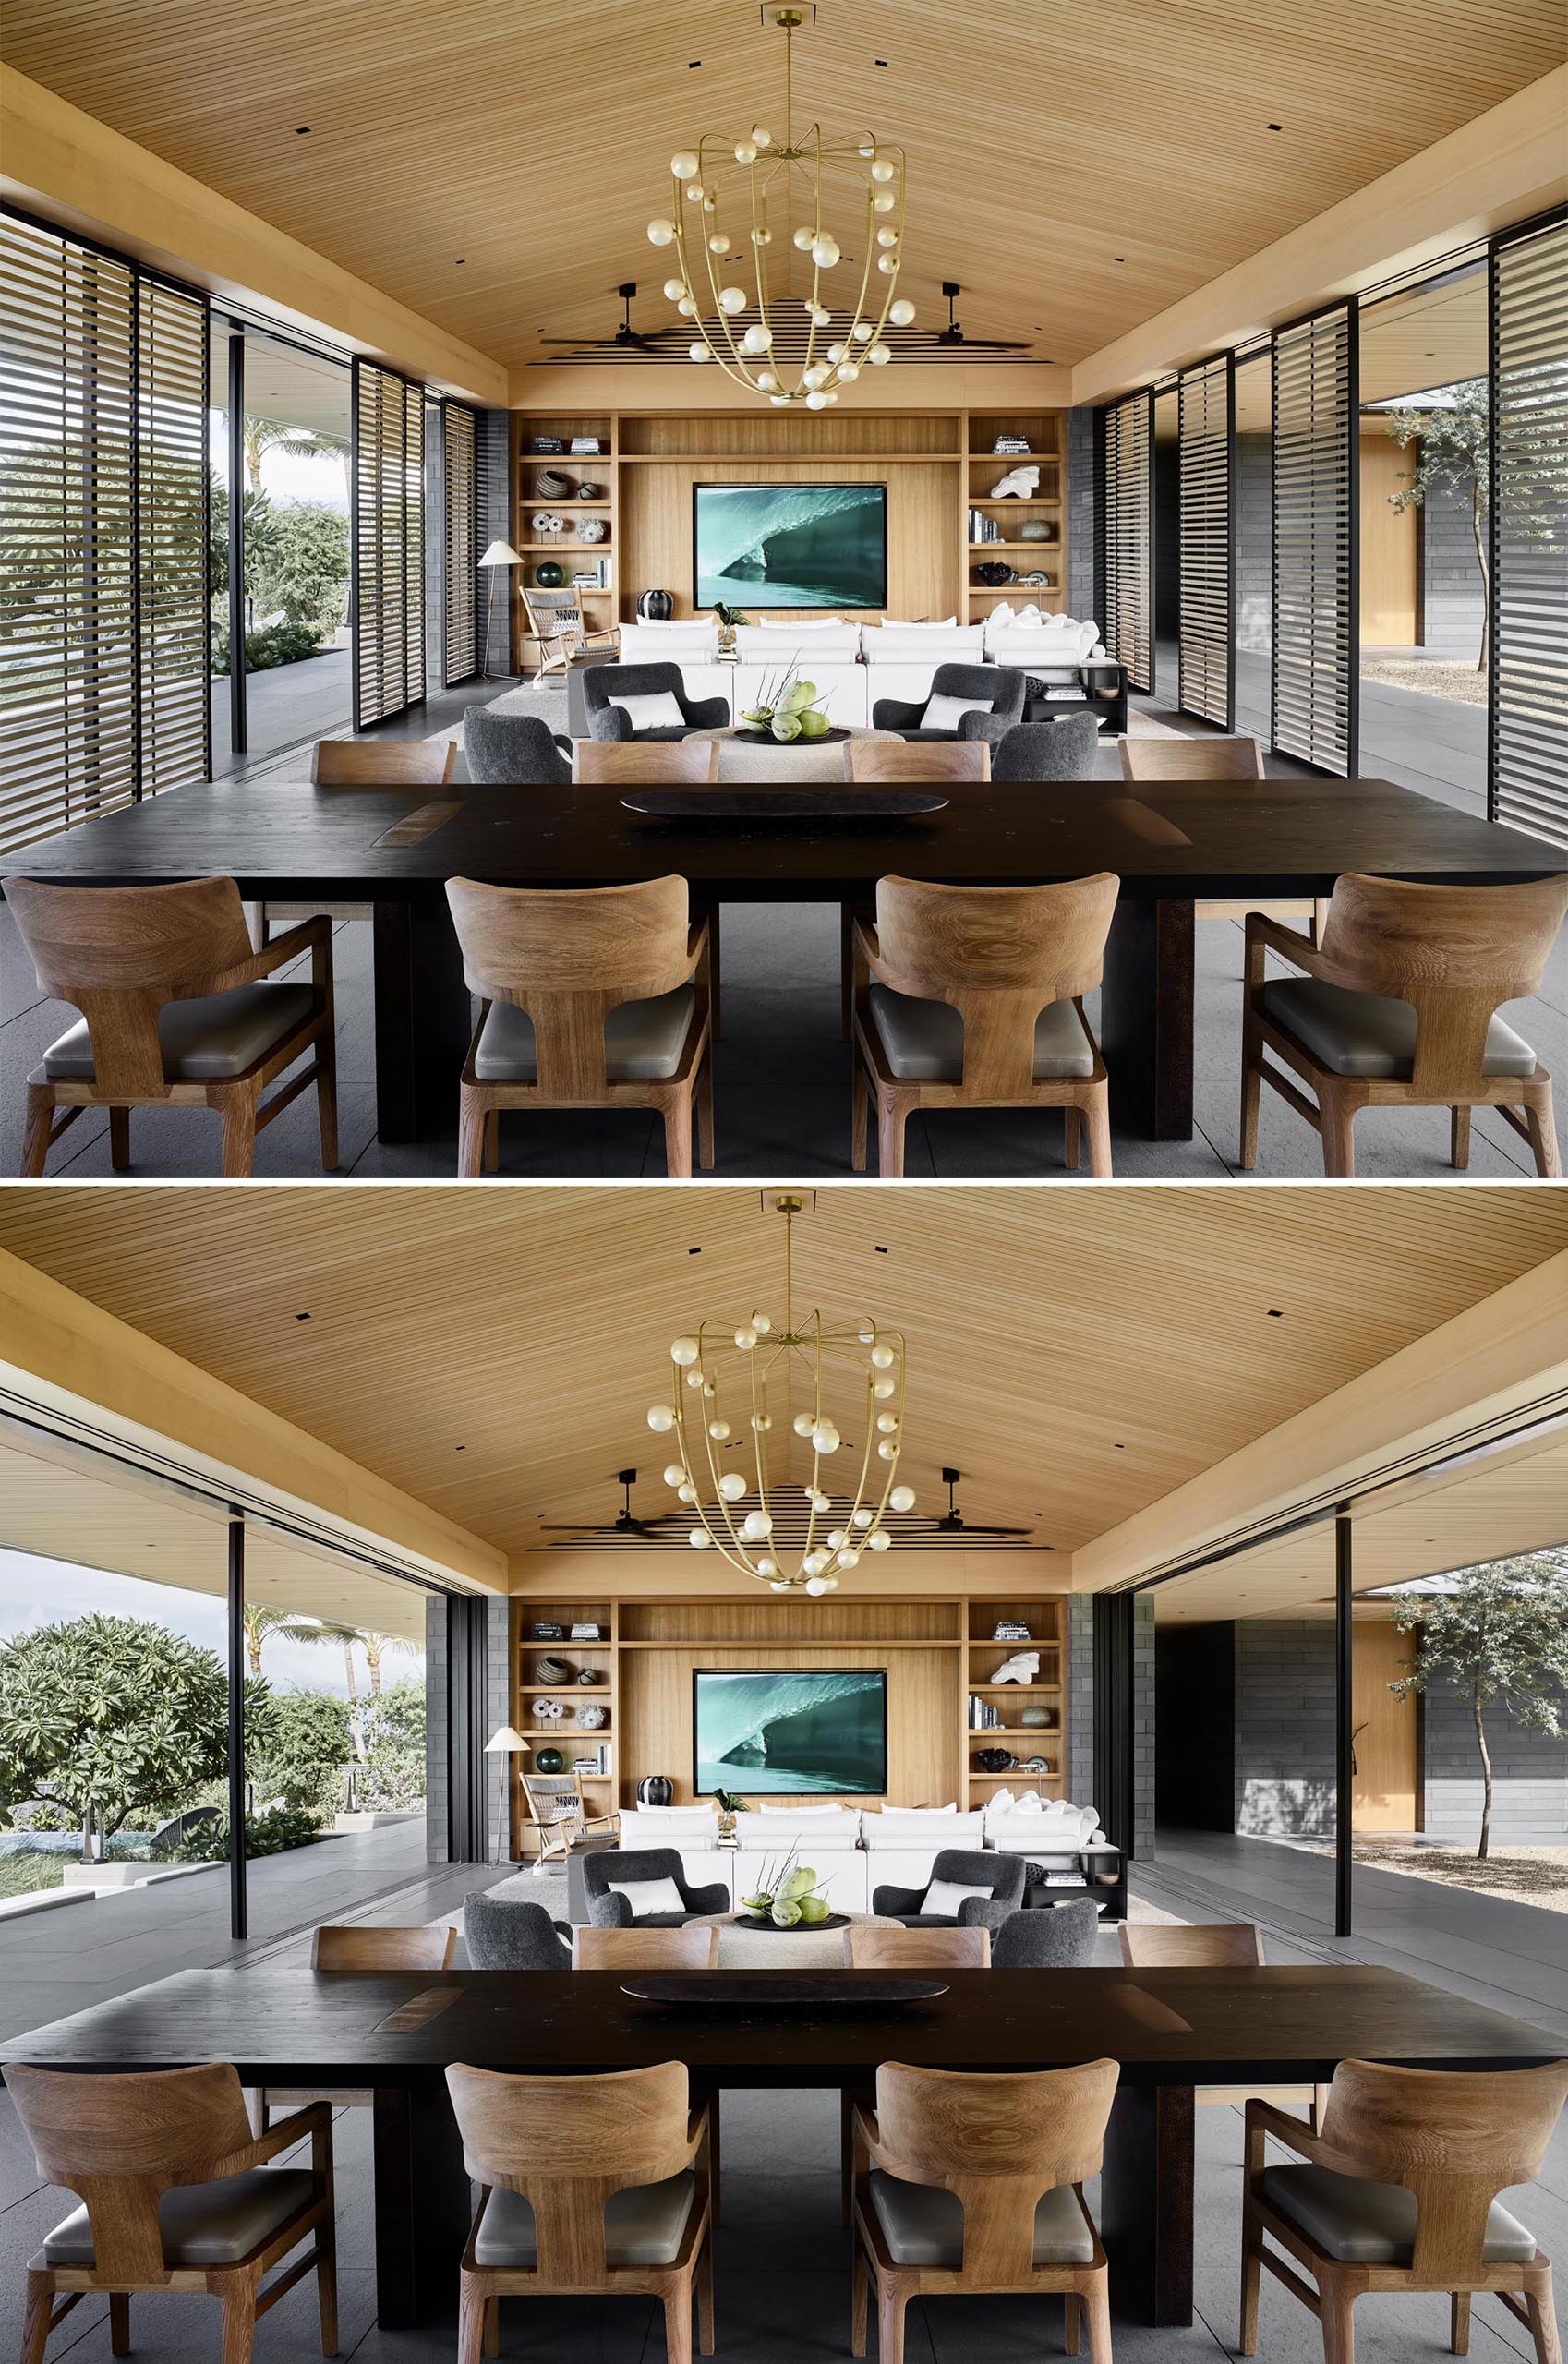 Screens and glass walls open this great room to the outdoors.